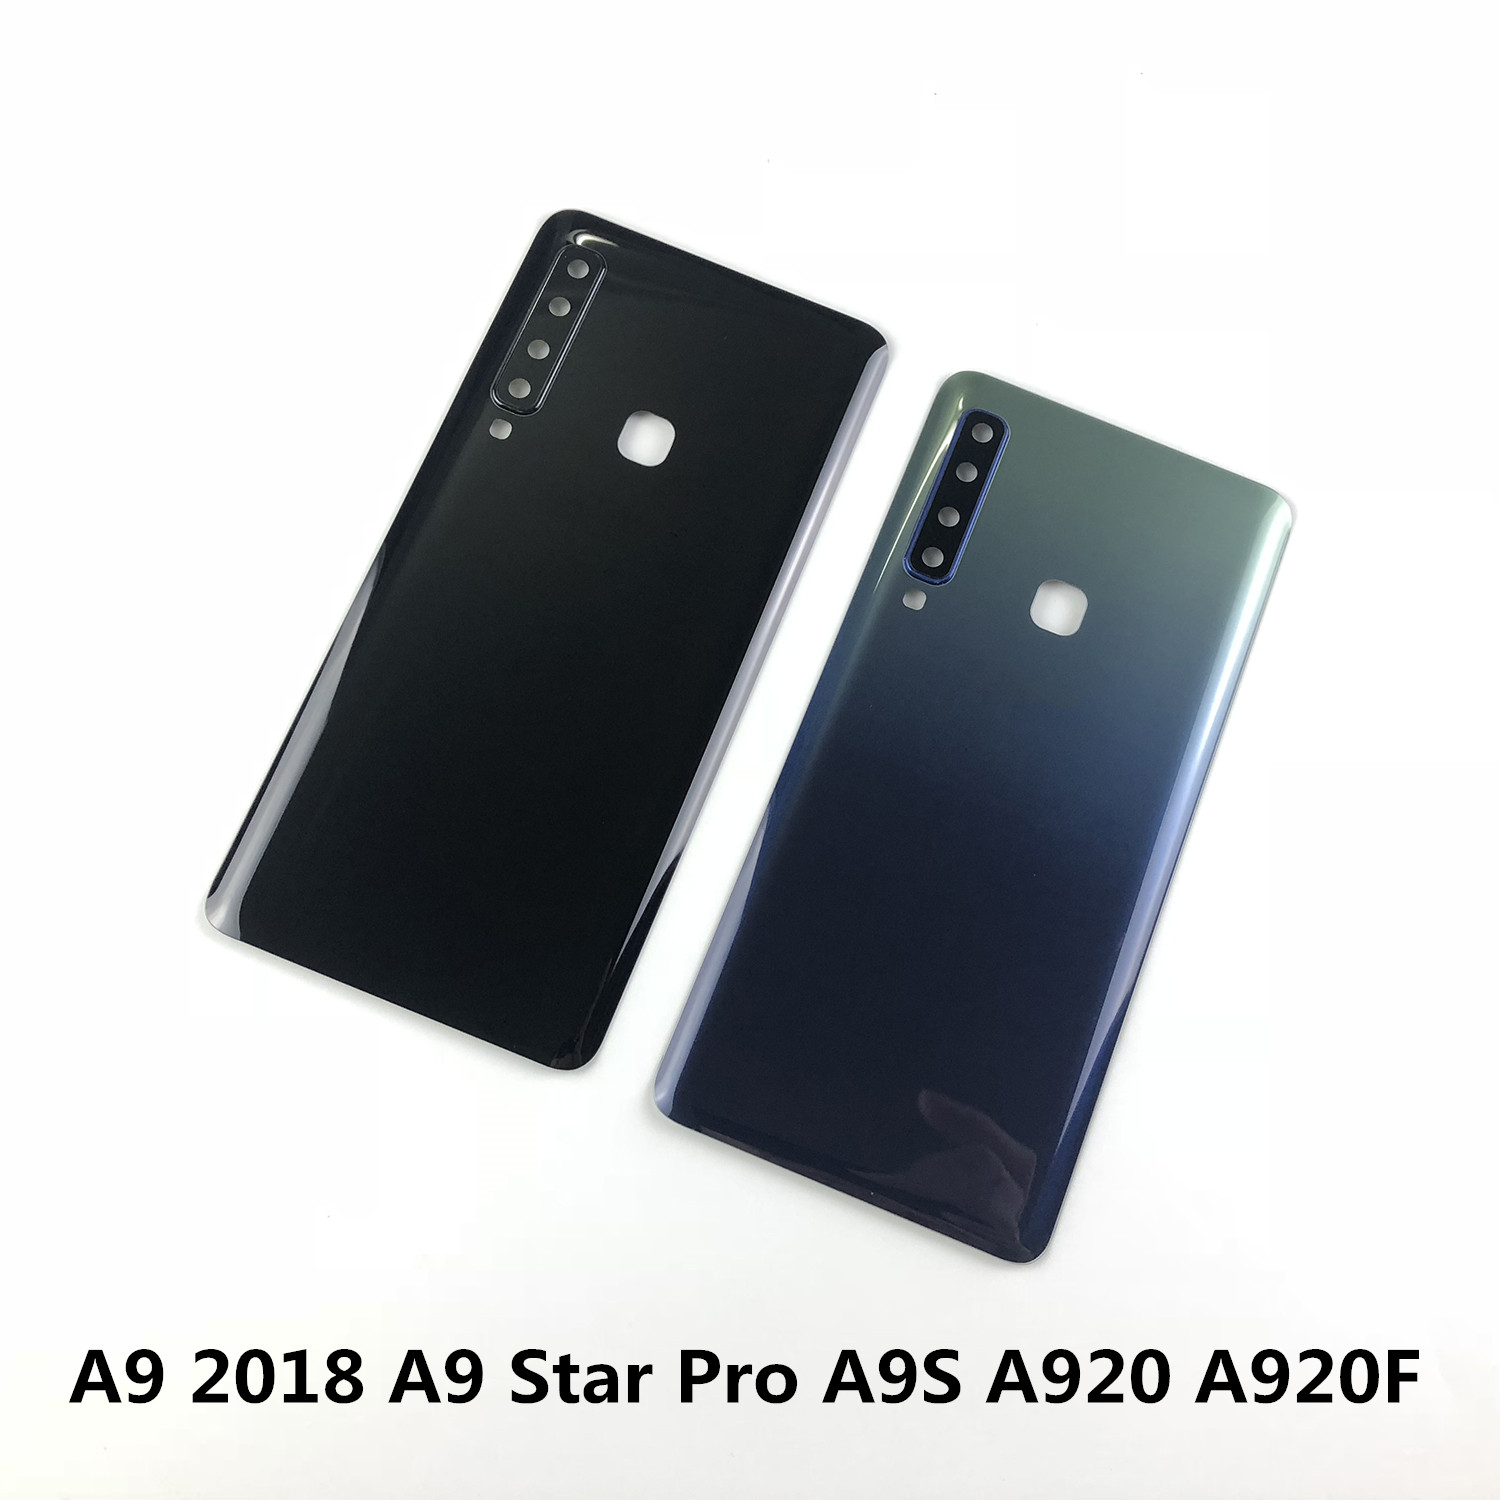 For Samsung Galaxy A9 2018 A9 Star Pro A9S A920 A920F Battery Cover Rear Door Back Glass Housing+Camera Lens Cover+Sticker Glue